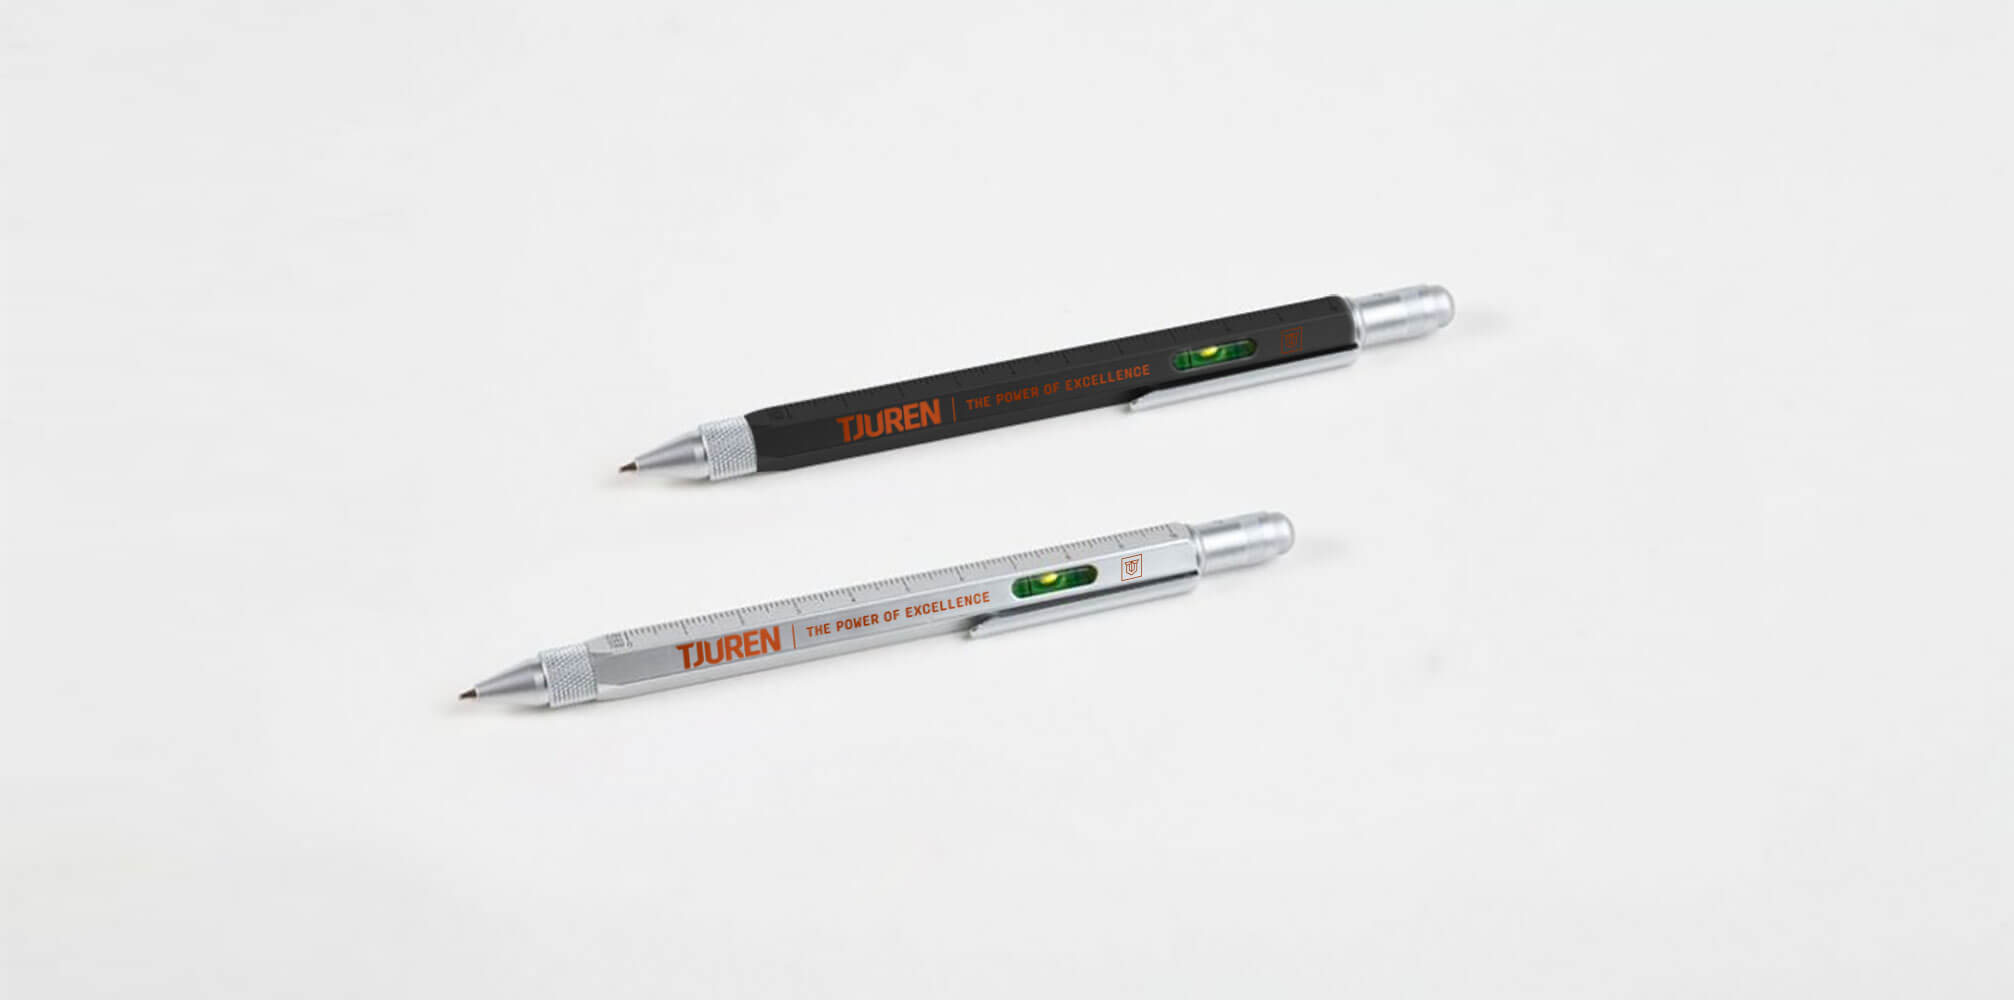 Two pens with tjurens branding printed on them.